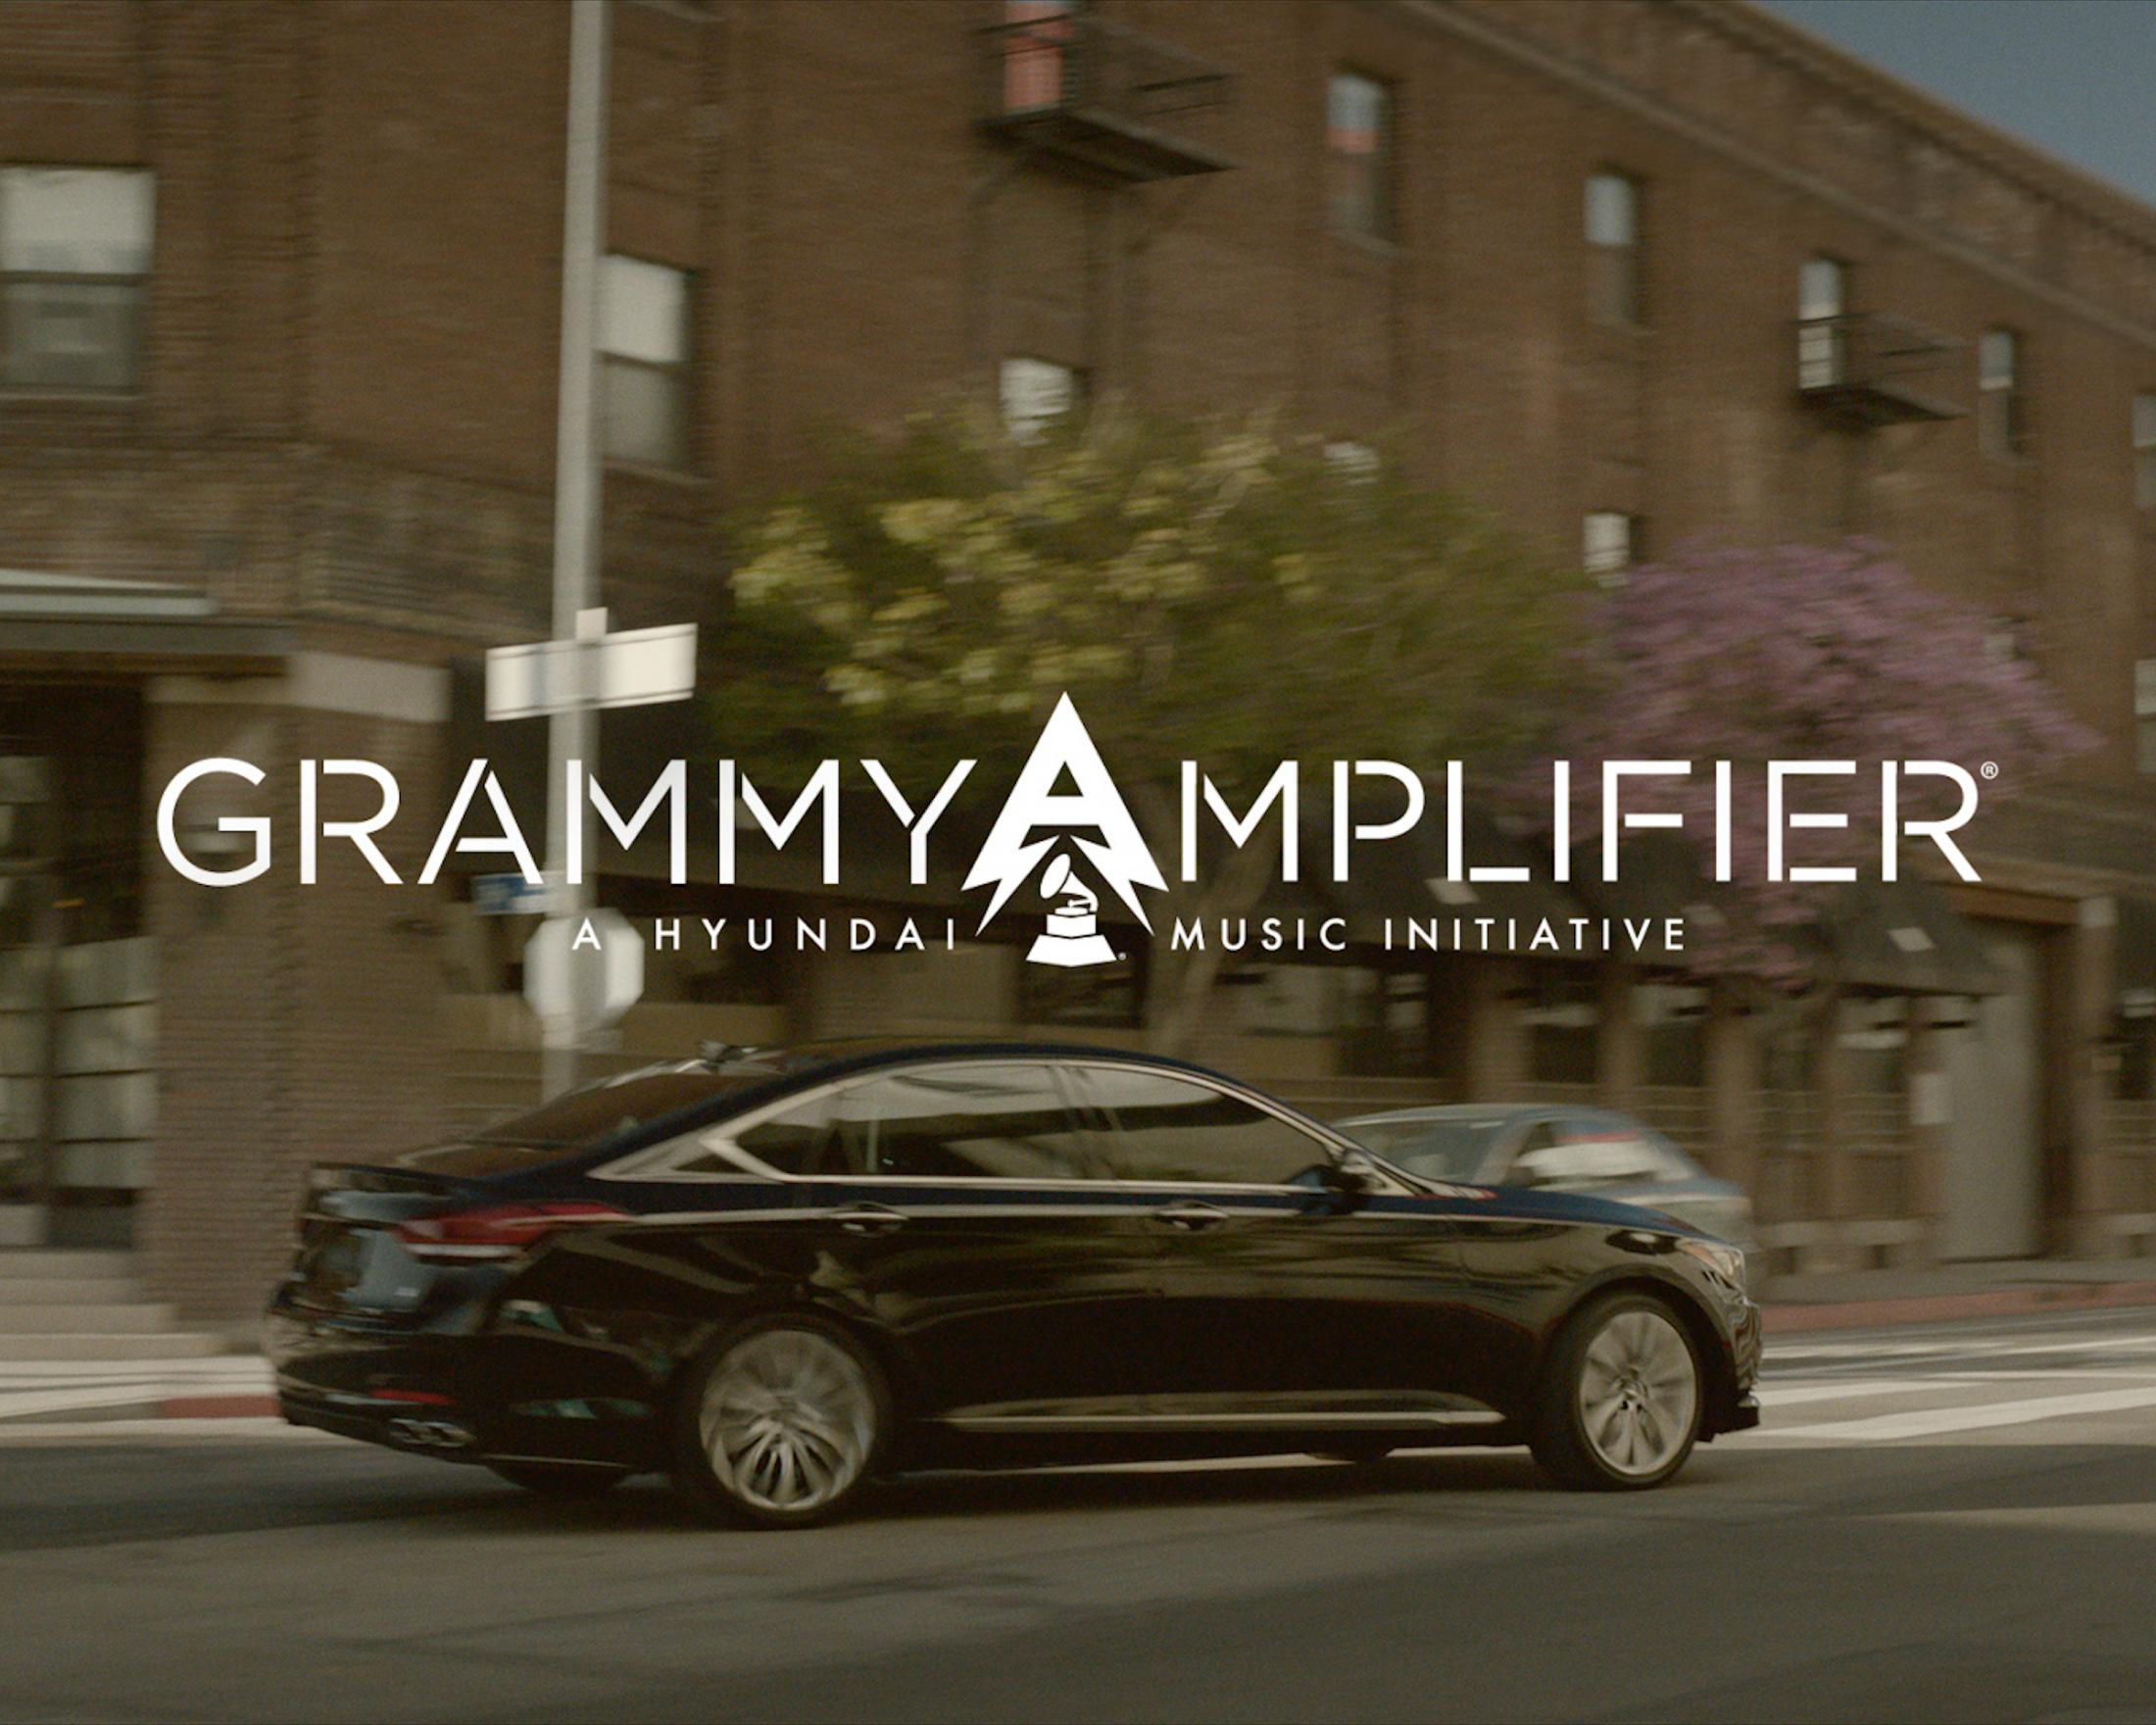 Thumbnail for Hyundai GRAMMY Amplifier Program